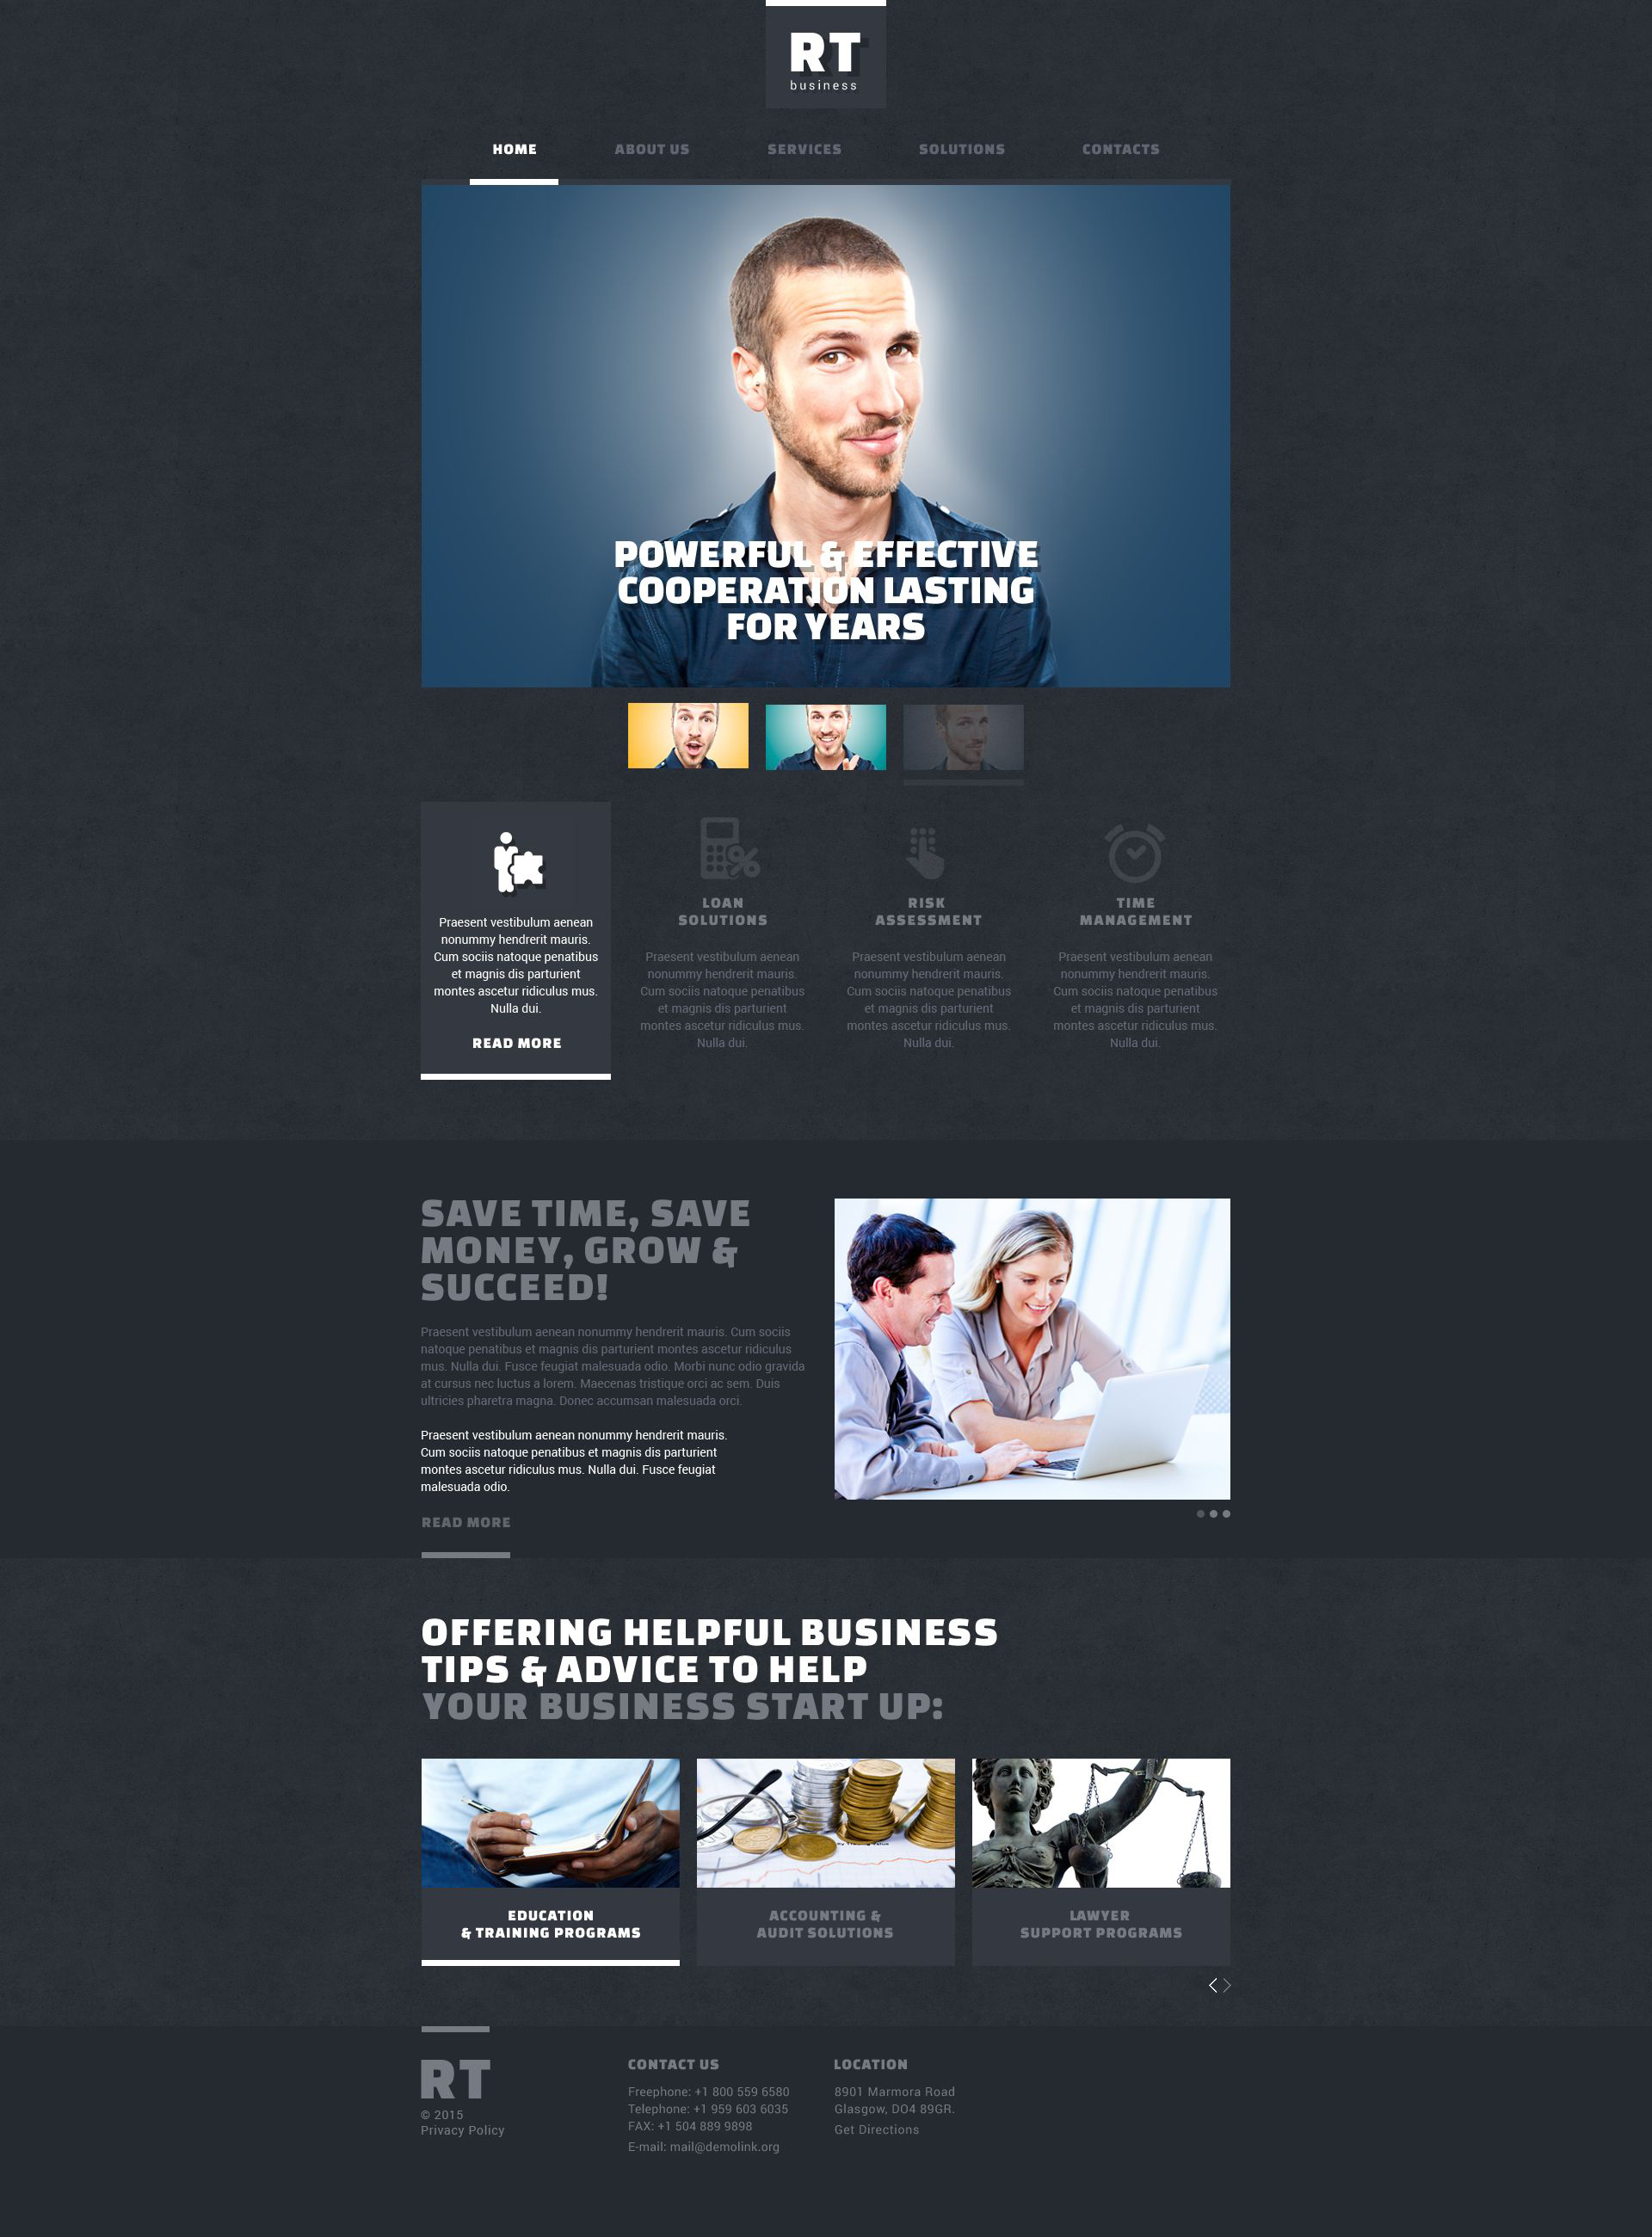 The RT Business Success Company Responsive Javascript Animated Design 53105, one of the best website templates of its kind (business, most popular), also known as RT business success company website template, enterprise solution website template, business website template, industry website template, technical website template, clients website template, customer support website template, automate website template, flow website template, services website template, plug-in website template, flex website template, profile website template, principles website template, web products website template, technology system and related with RT business success company, enterprise solution, business, industry, technical, clients, customer support, automate, flow, services, plug-in, flex, profile, principles, web products, technology system, etc.